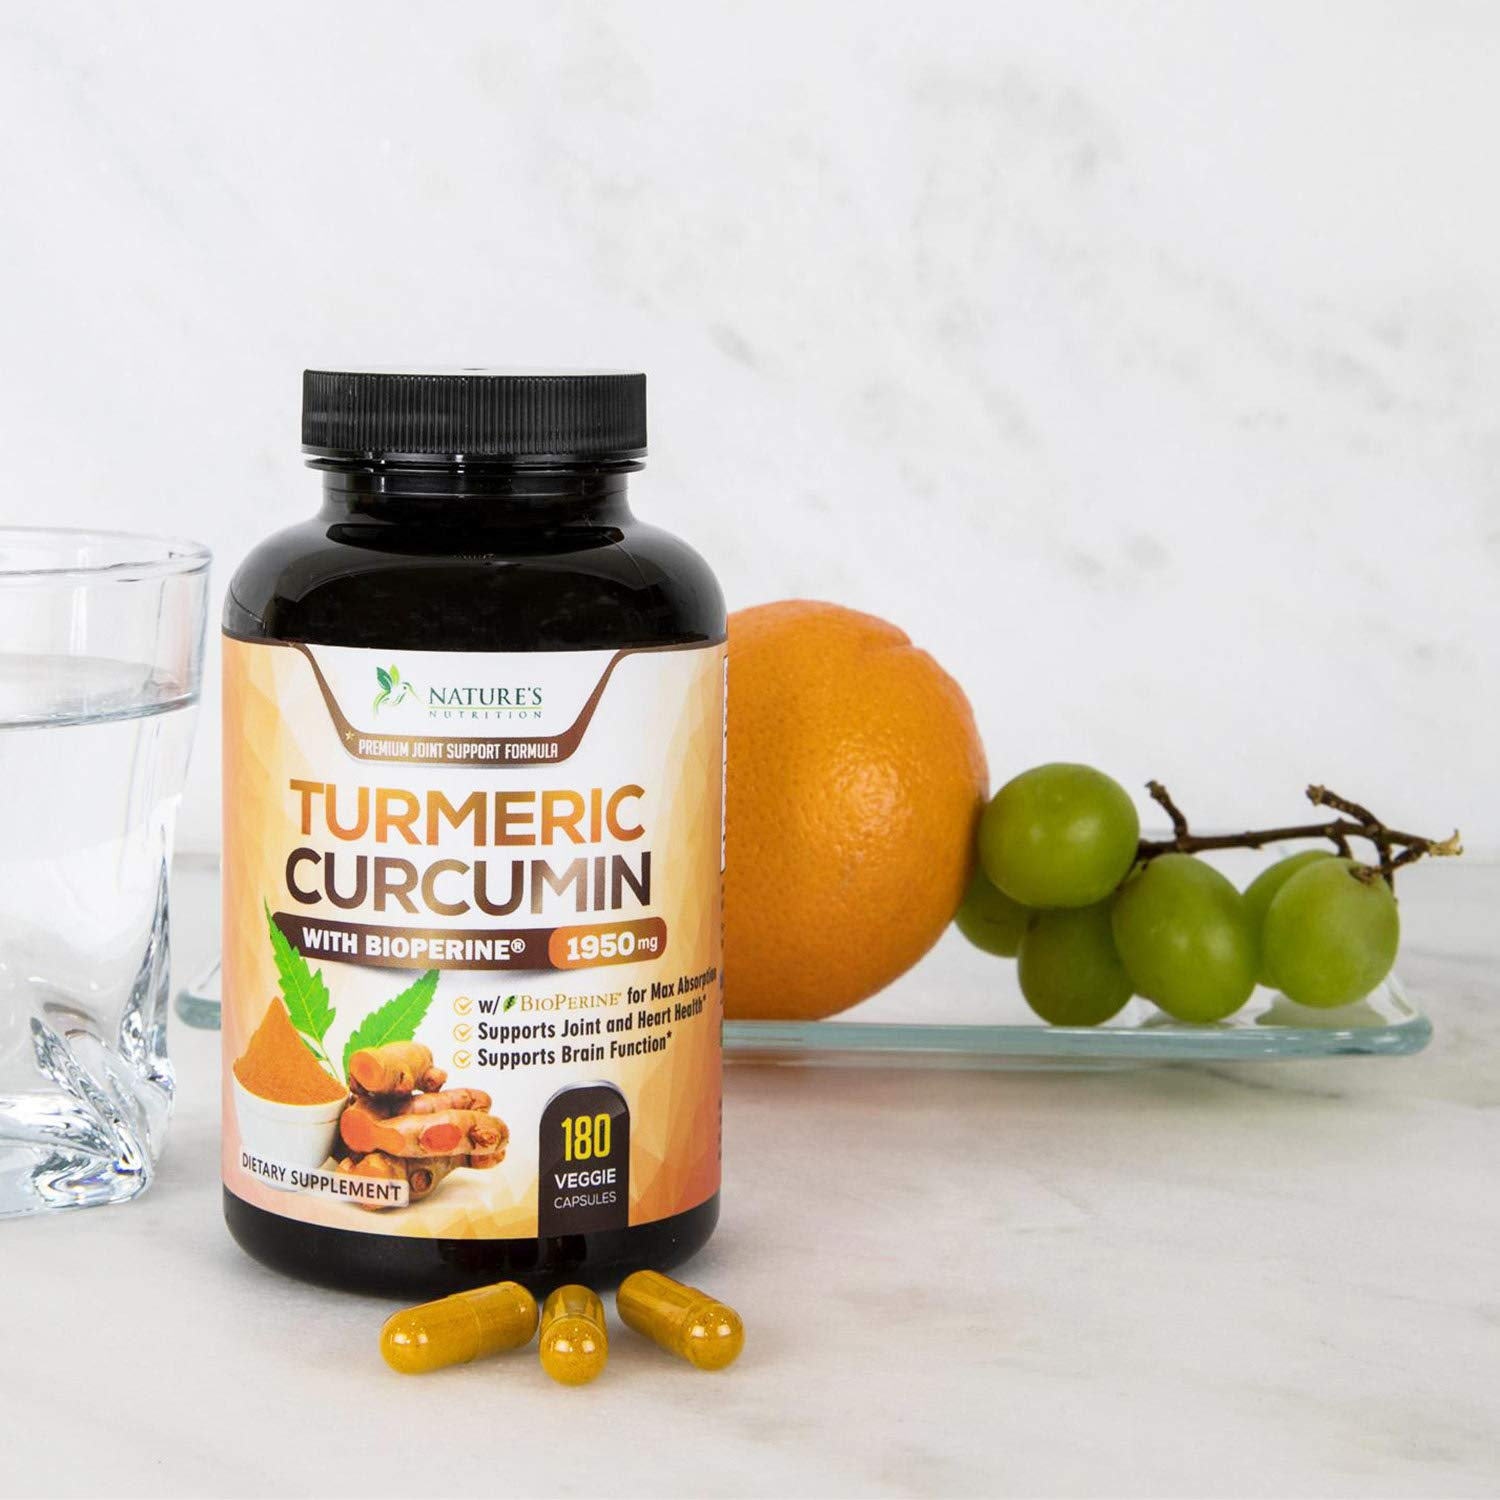 Turmeric Curcumin Max Potency 95% Curcuminoids 1950mg with Bioperine Black Pepper for Best Absorption, Anti-Inflammatory Joint Relief, Turmeric Supplement Pills by Natures Nutrition - 180 Capsules by Nature's Nutrition (Image #6)